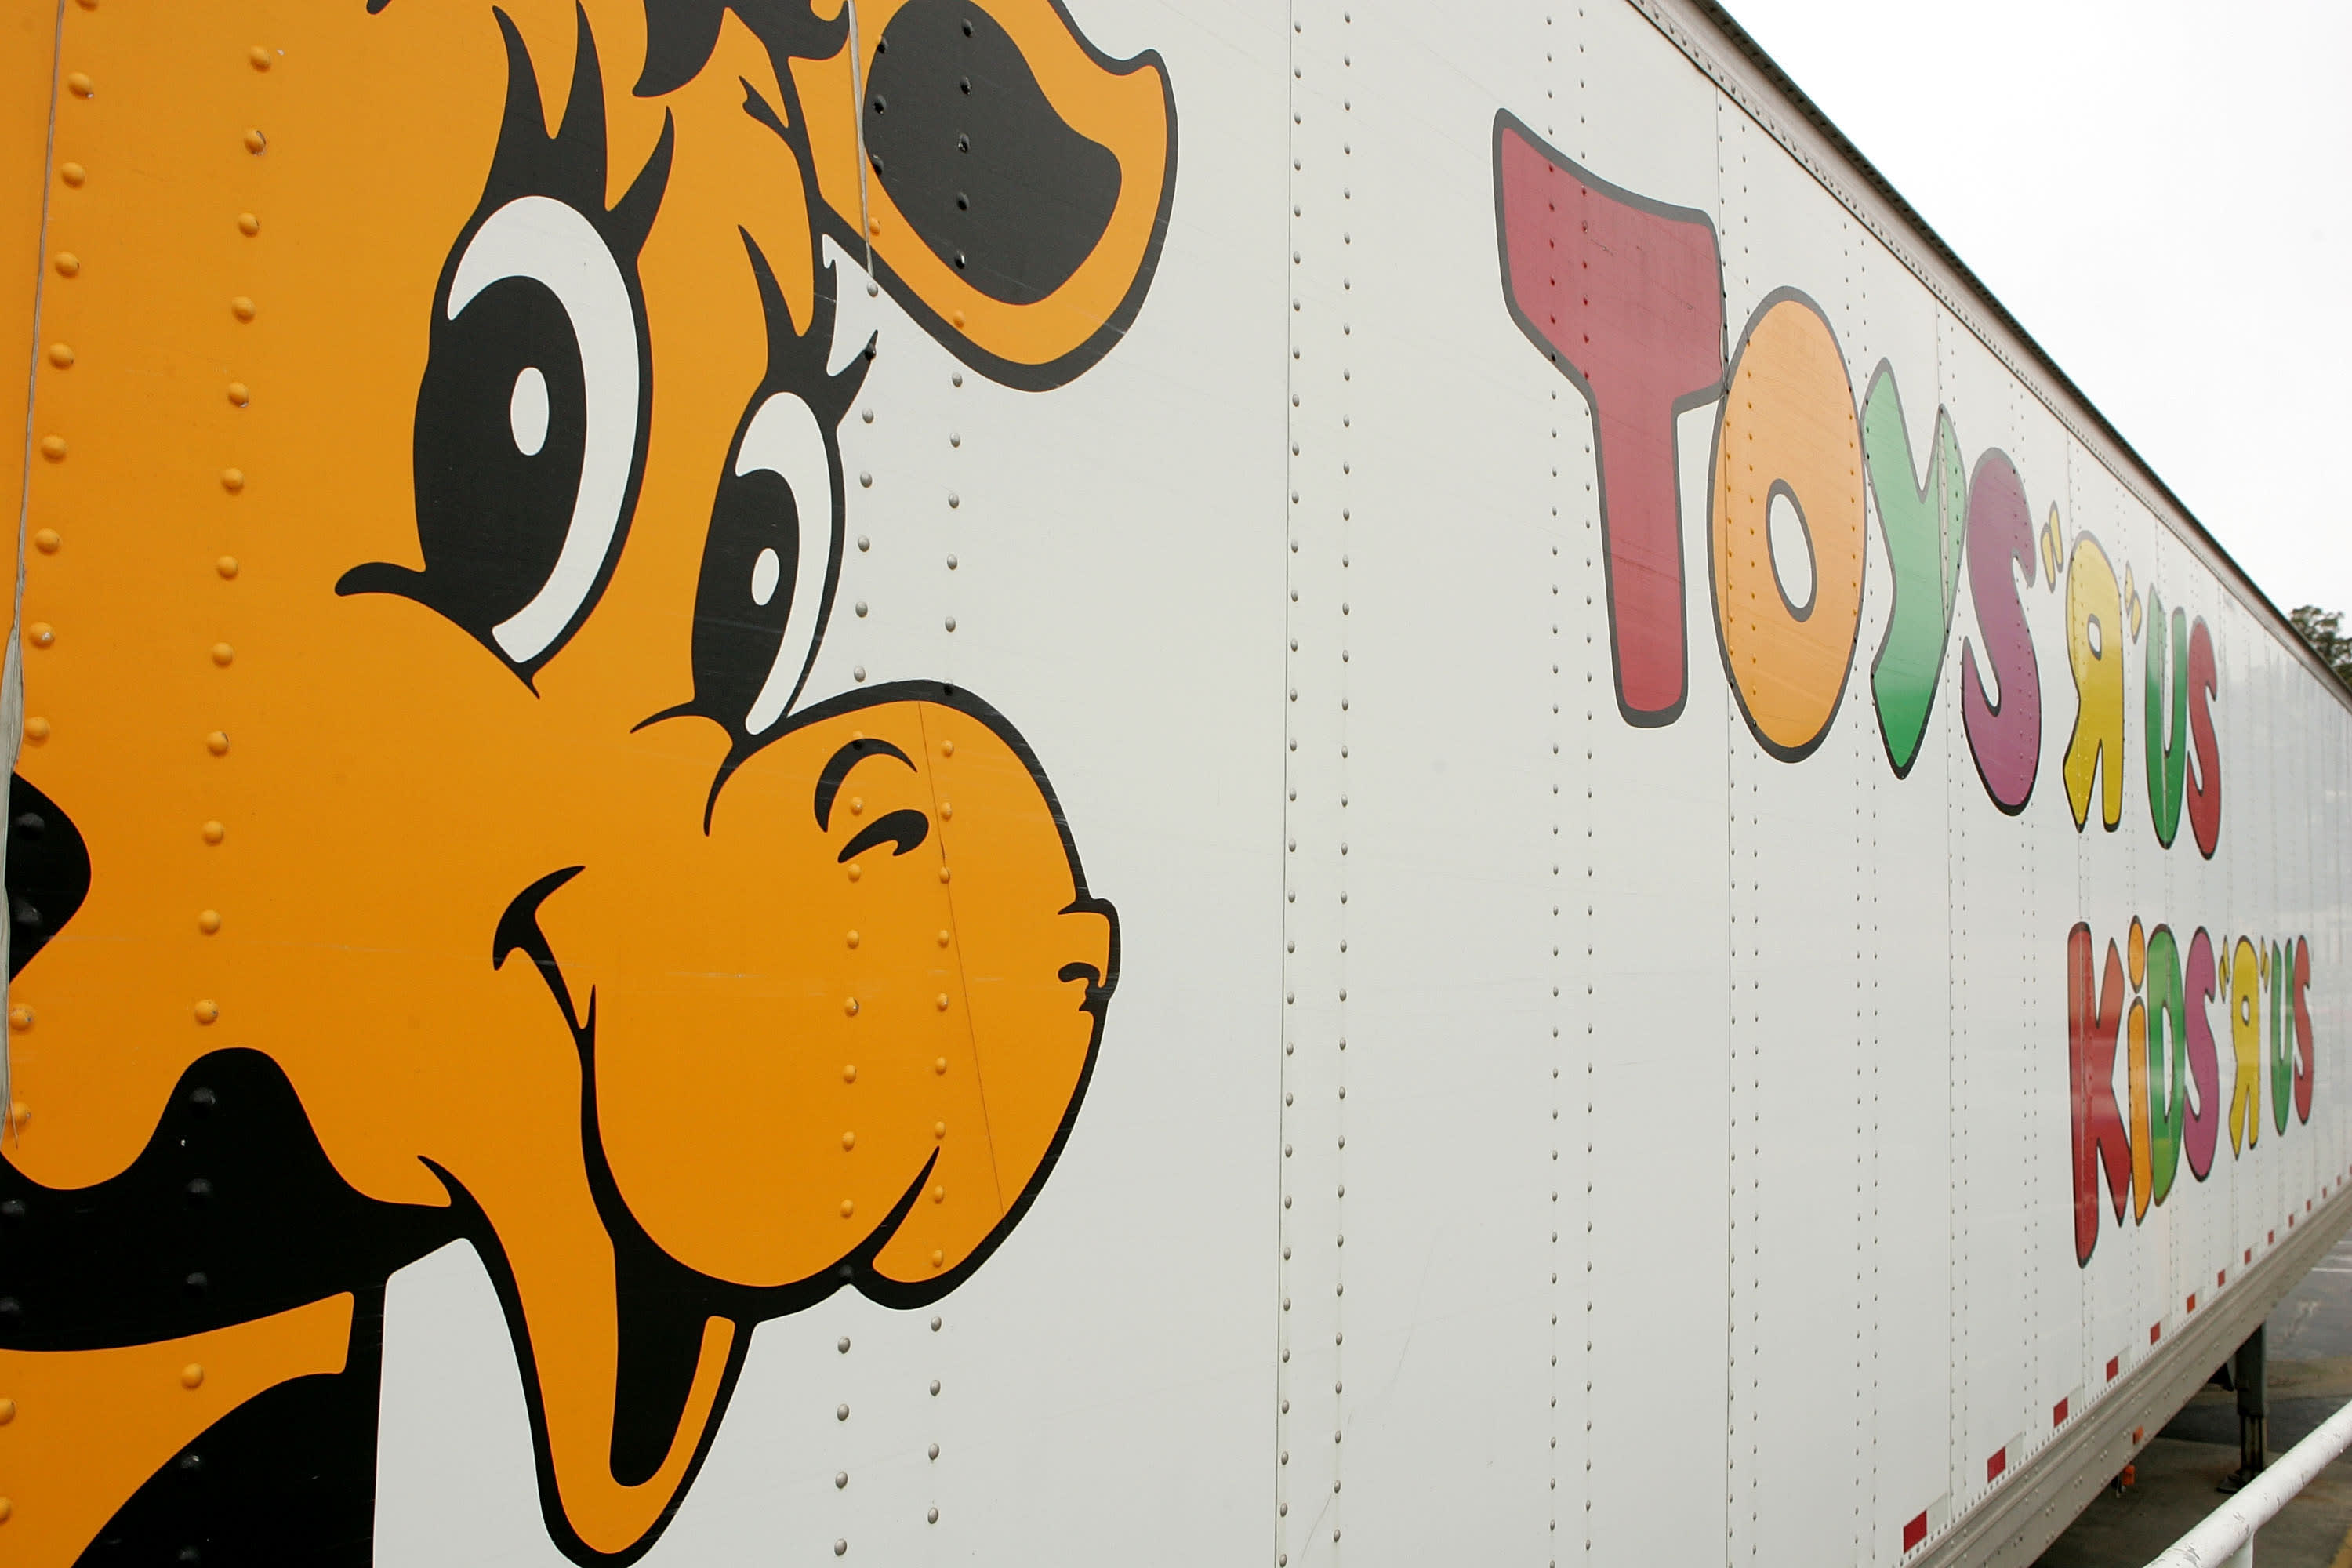 Toys R Us has a new owner that's planning to open stores again in the U.S. – CNBC